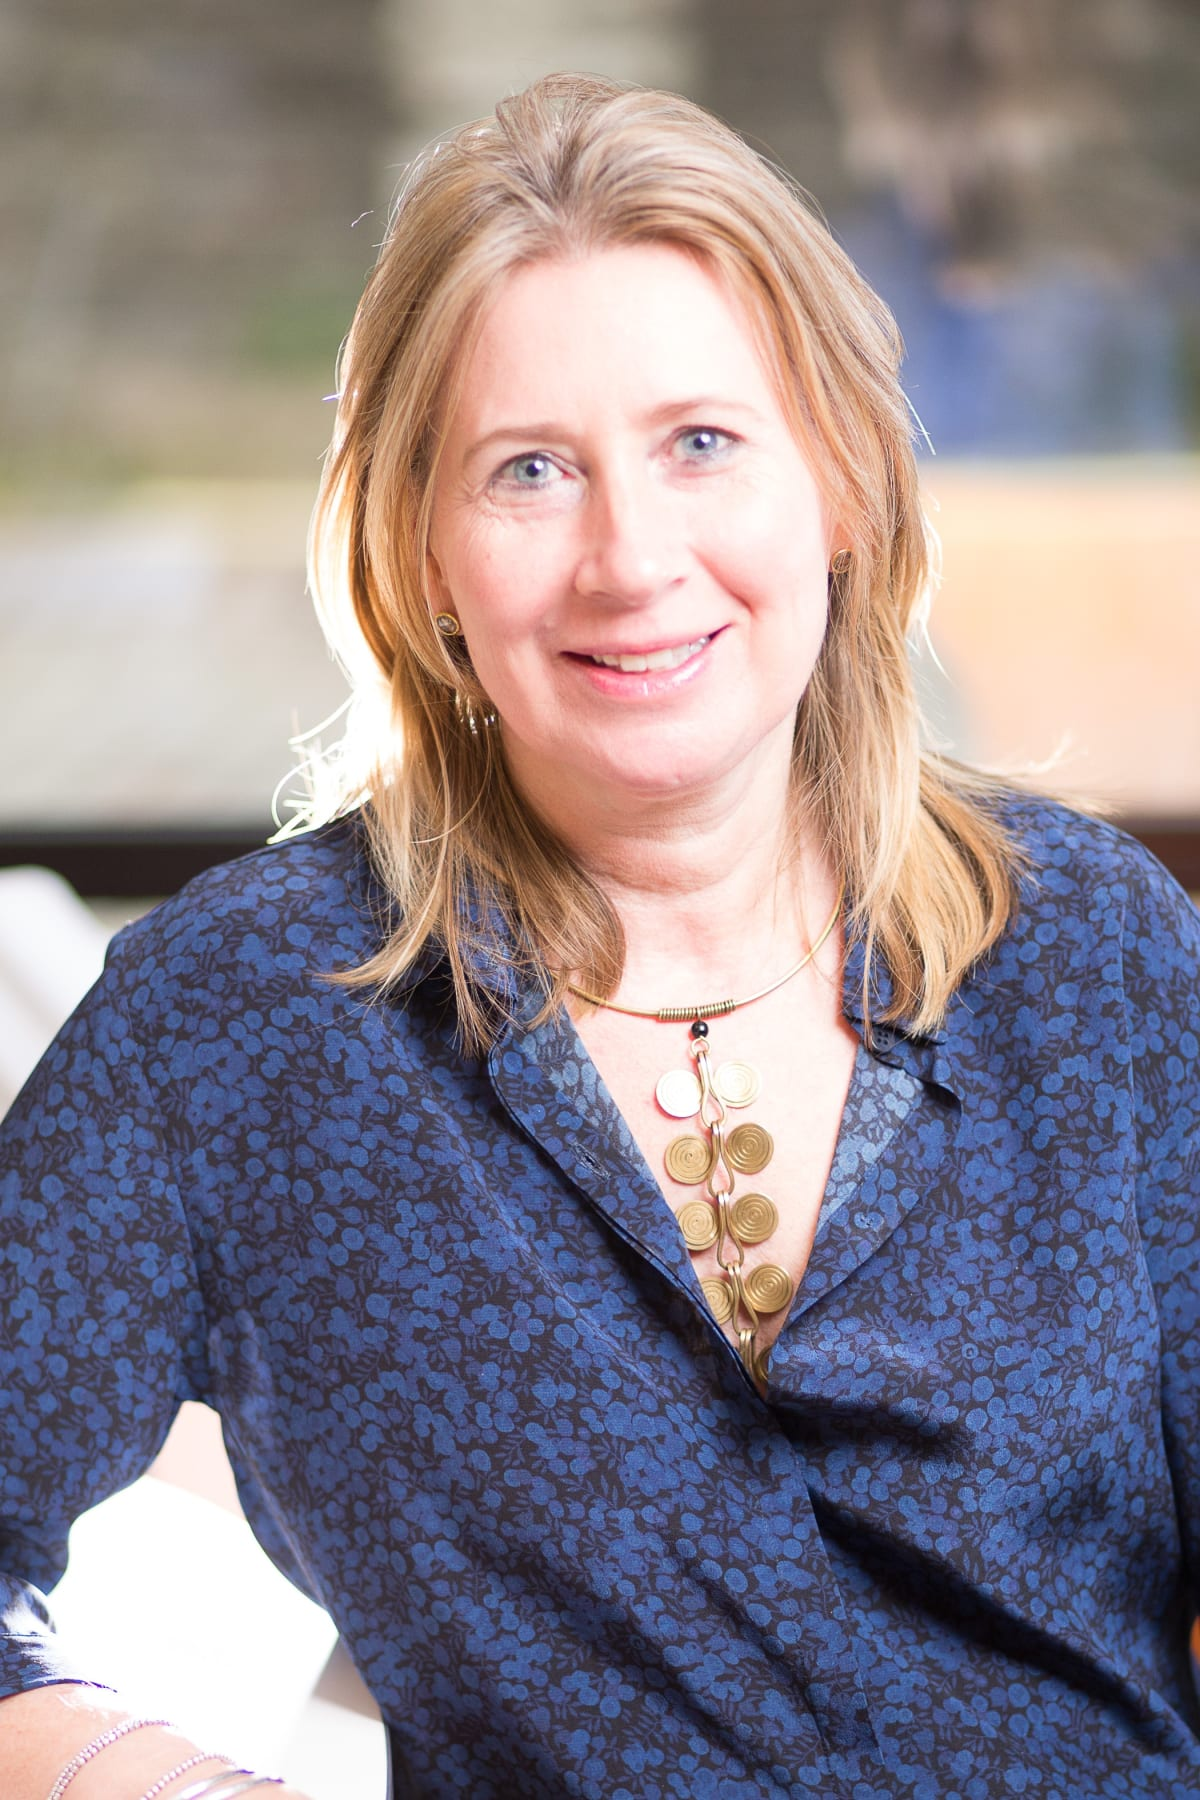 Philippa Hogan-Hern, Executive Director, Jerwood Limited; Director, Jerwood Space and Trustee, Jerwood Charitable Foundation